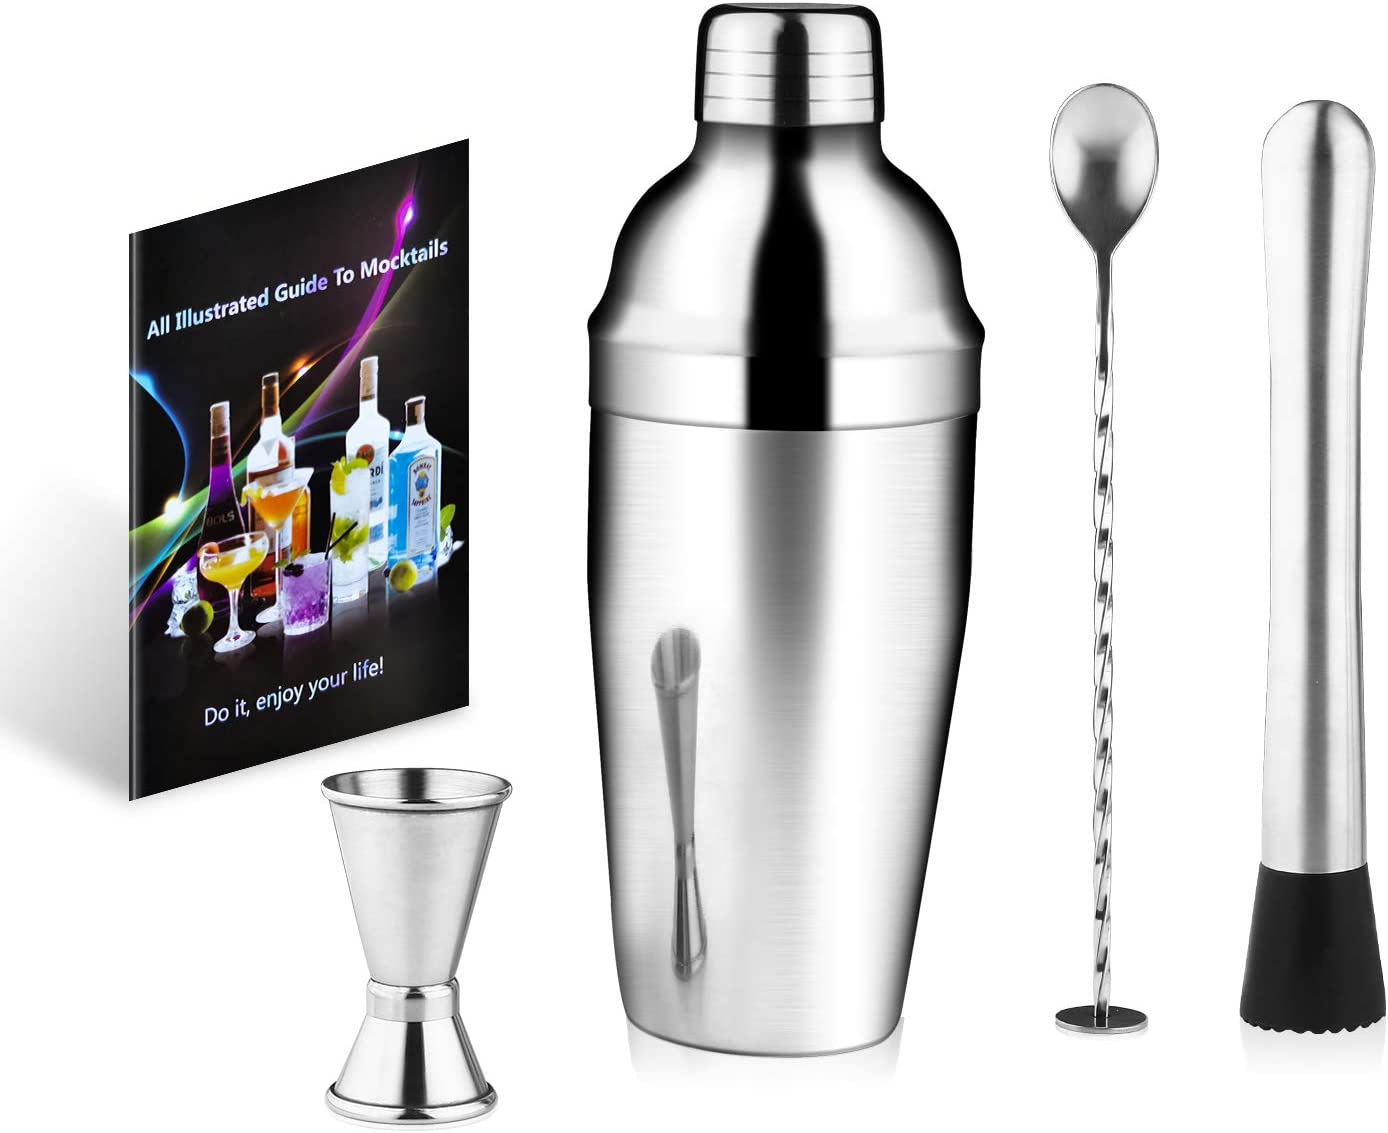 Cocktail Shaker Set 4 Piece, 25oz Stainless Steel Bartender Kit Professional Martini Mixing Bartending Kit Combination, Home Stylish Bar Tool Set with Cocktail Recipes Booklet